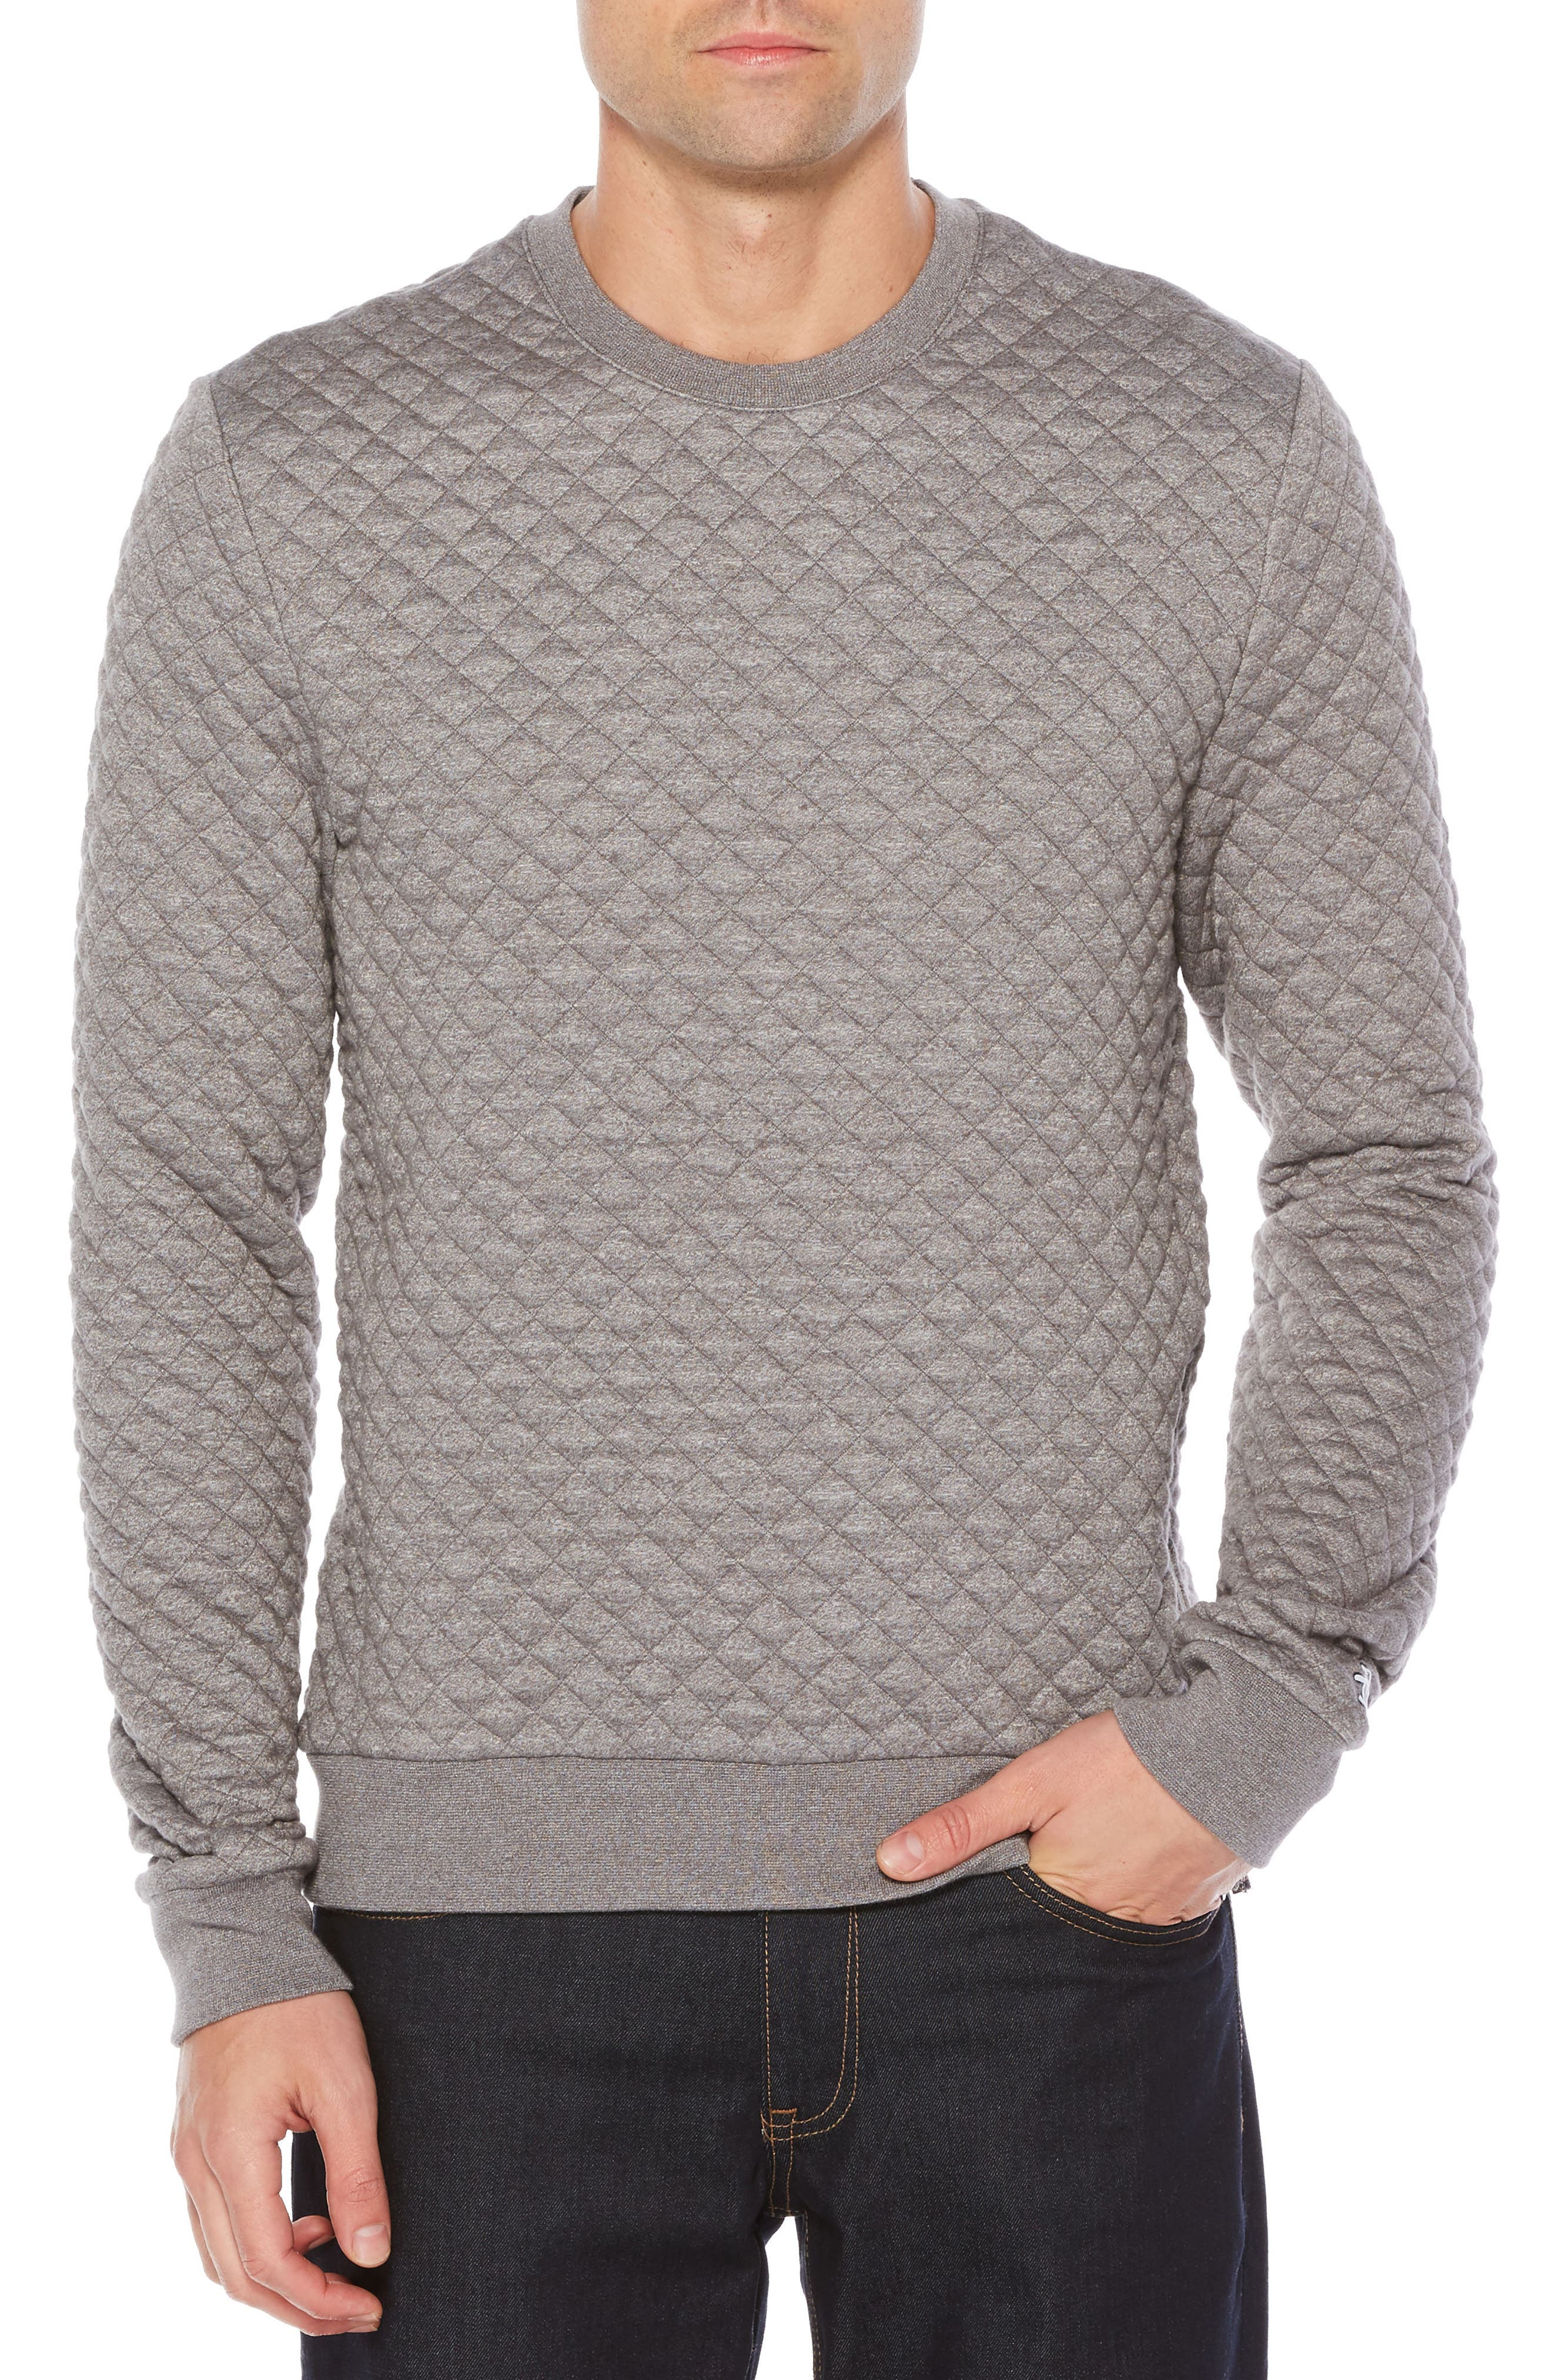 Alternate Image 1 Selected - Original Penguin Quilted Sweater